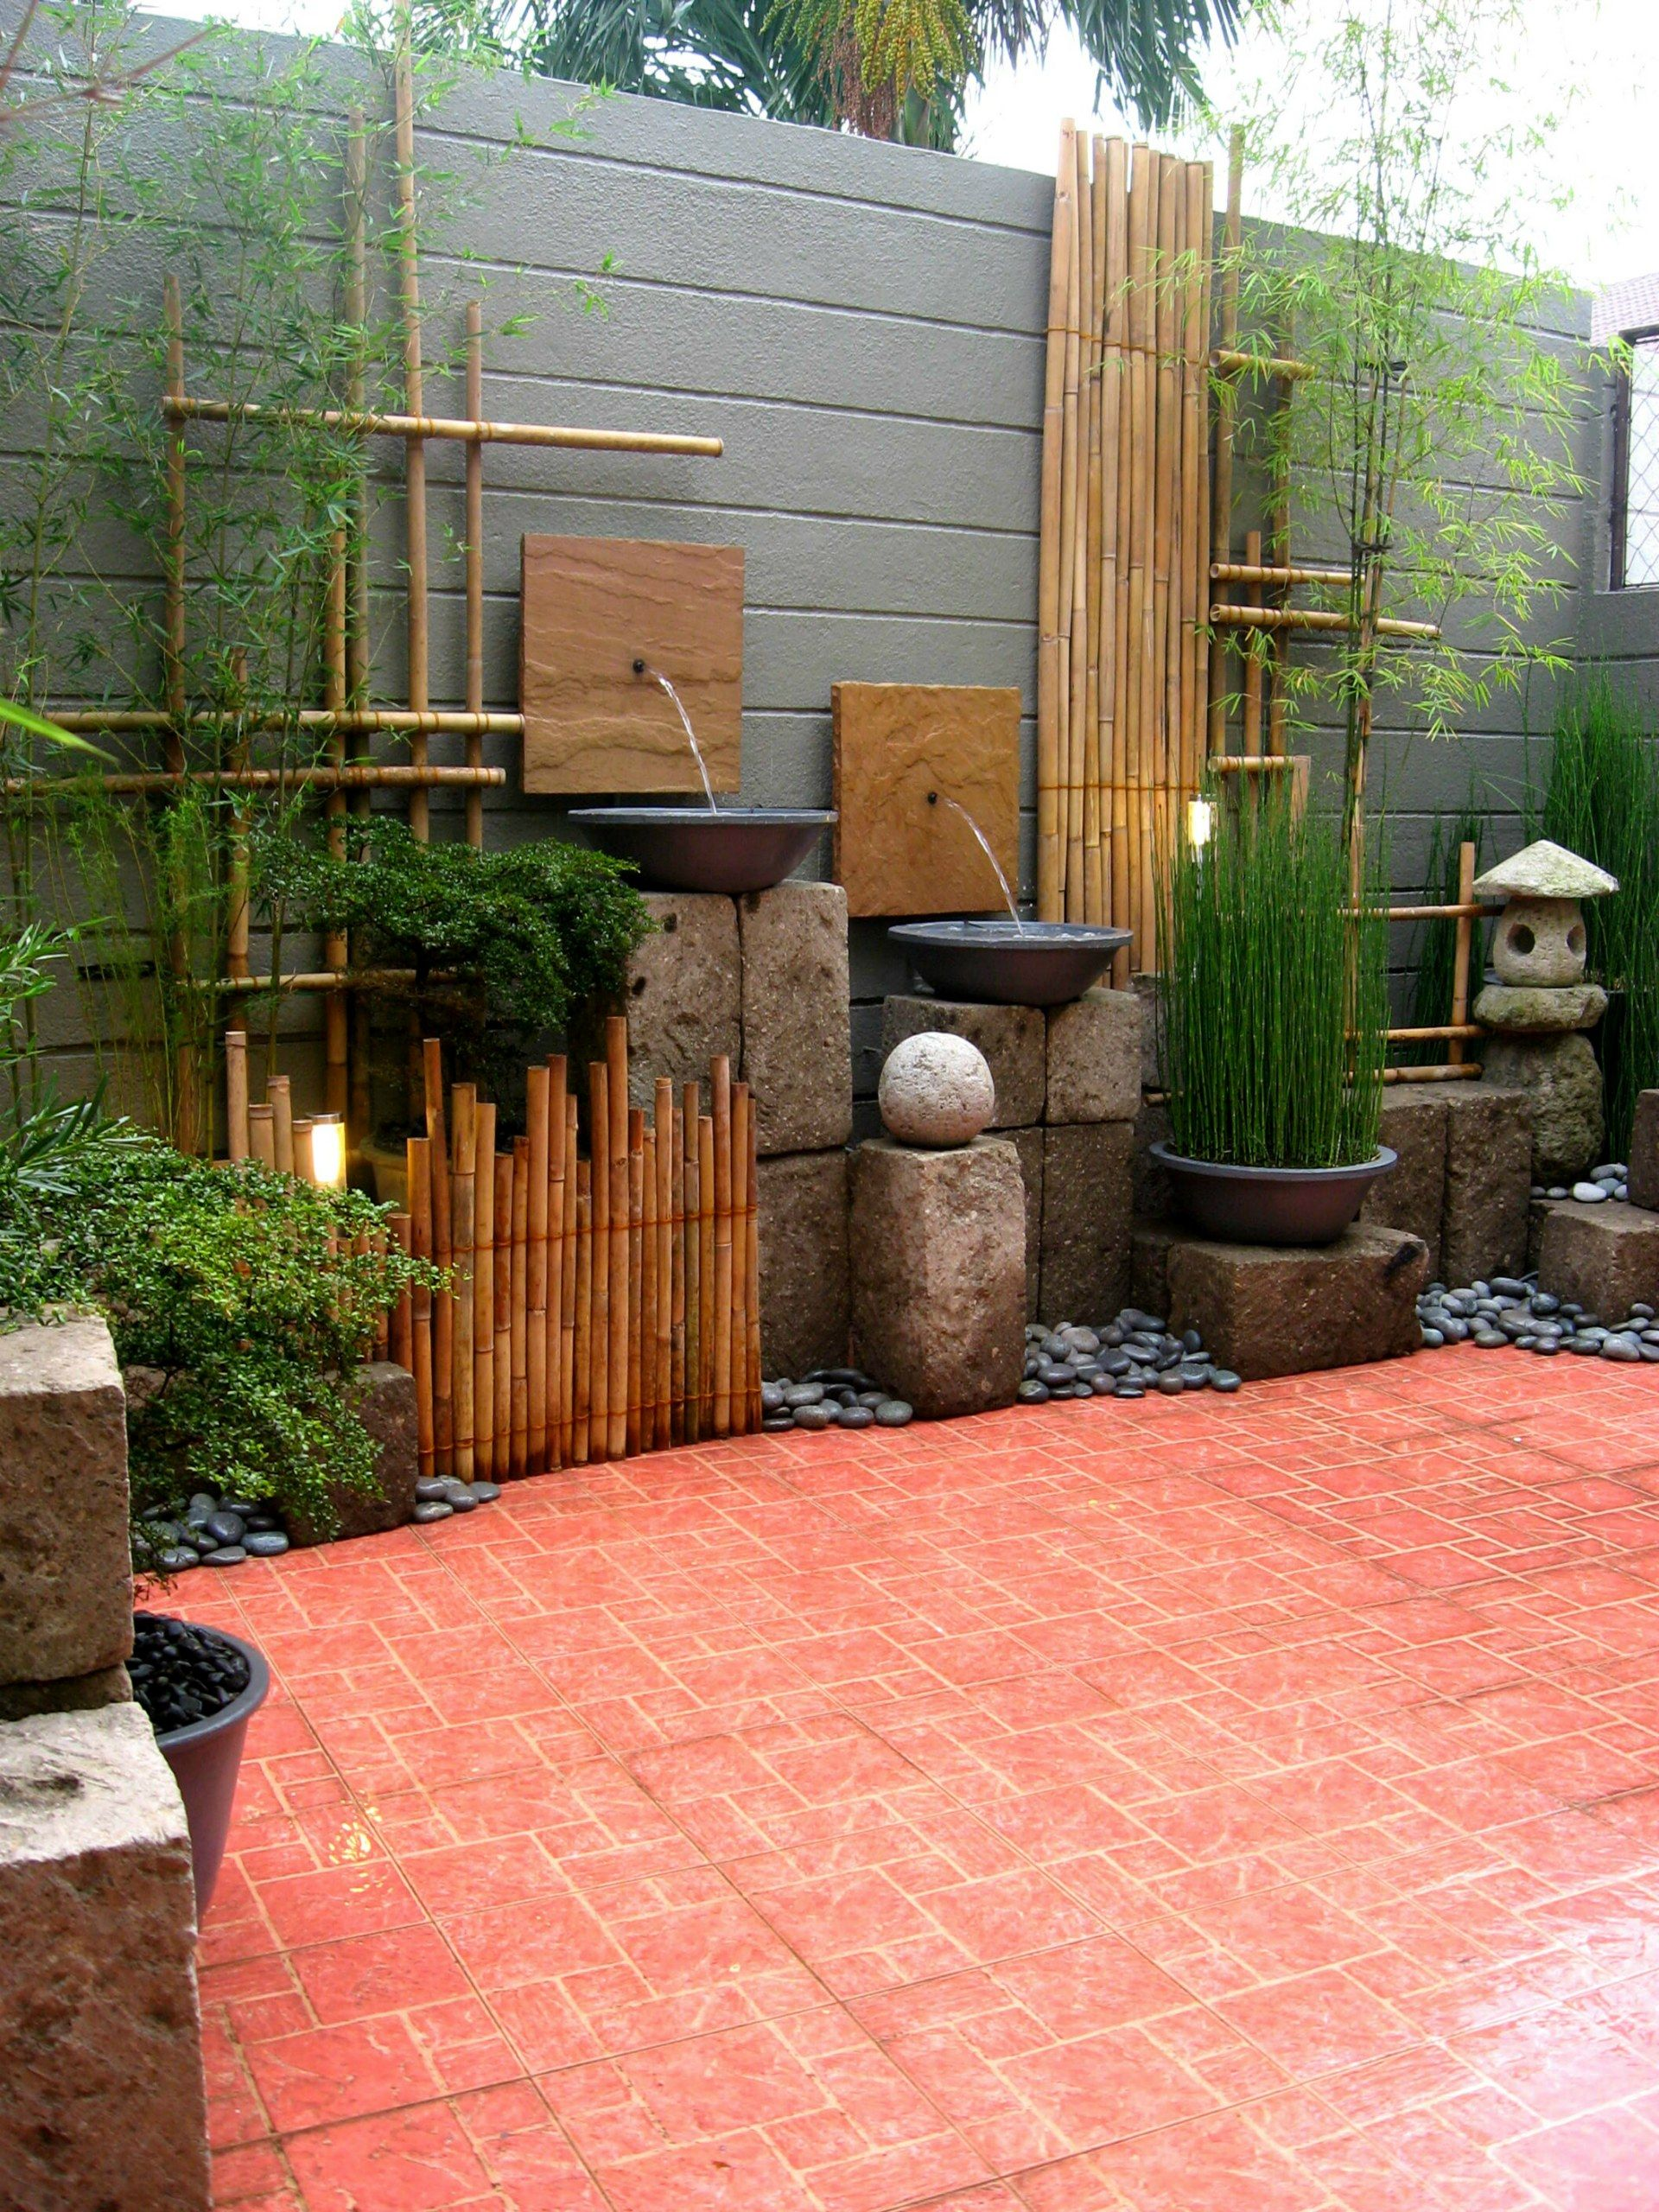 Landscape Wall Design Ideas From Primescape Philippines Small Garden Landscape Japanese Garden Landscape Small Garden Landscape Design